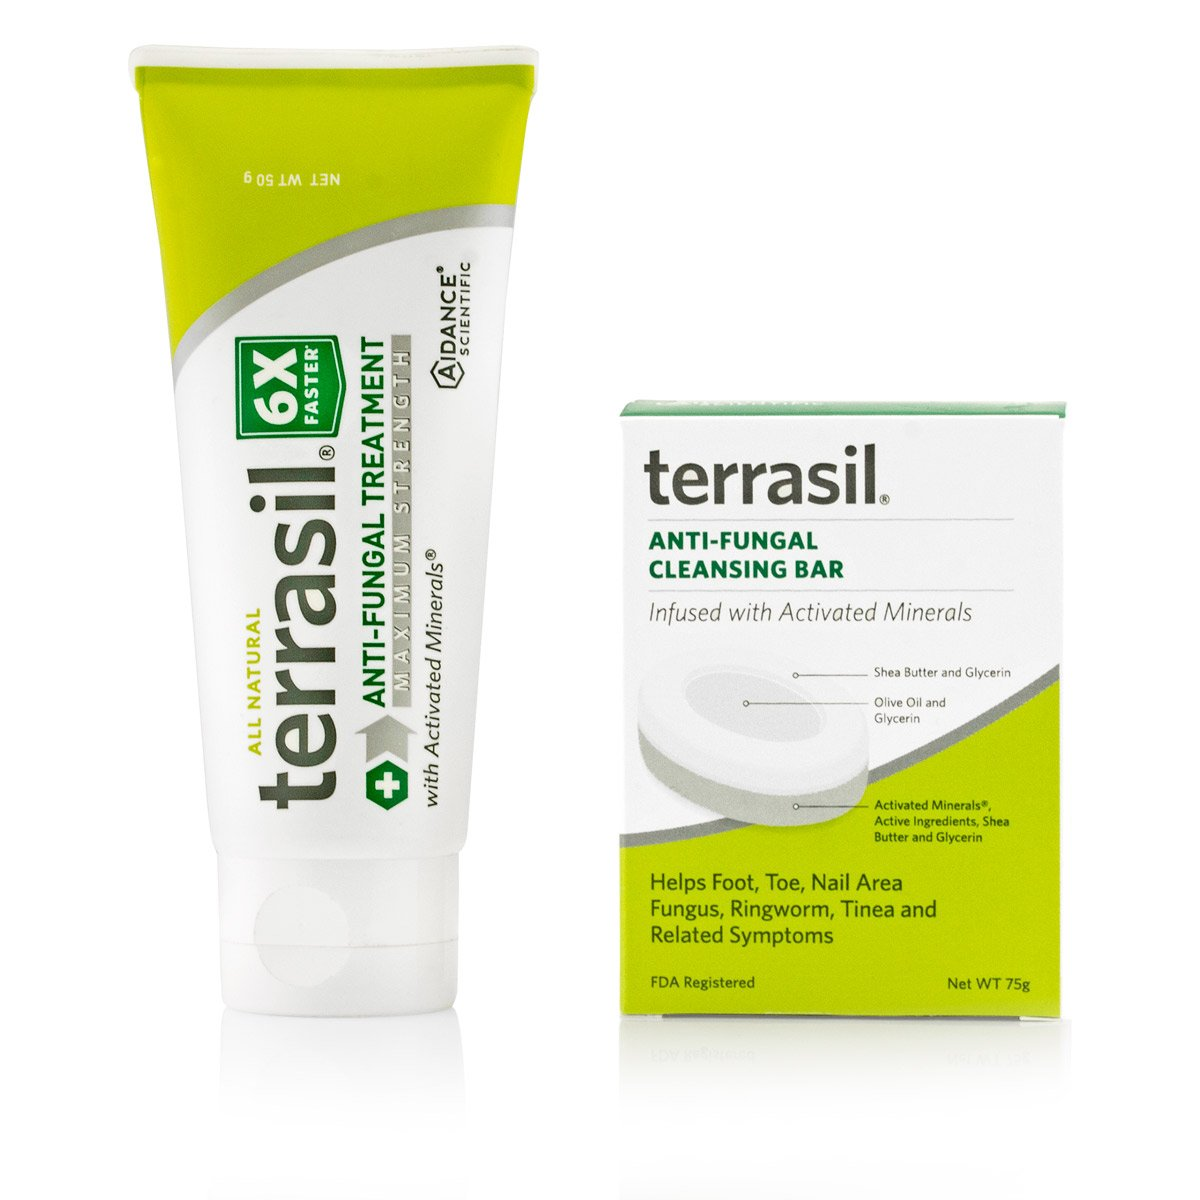 terrasil® Anti-fungal Treatment MAX + Anti-fungal Cleansing Soap - 6X Faster Doctor Recommended 100% Guaranteed All-Natural Soothing Clotrimazole OTC-Registered - Complete Treatment- 50g + Bar by Aidance Skincare & Topical Solutions